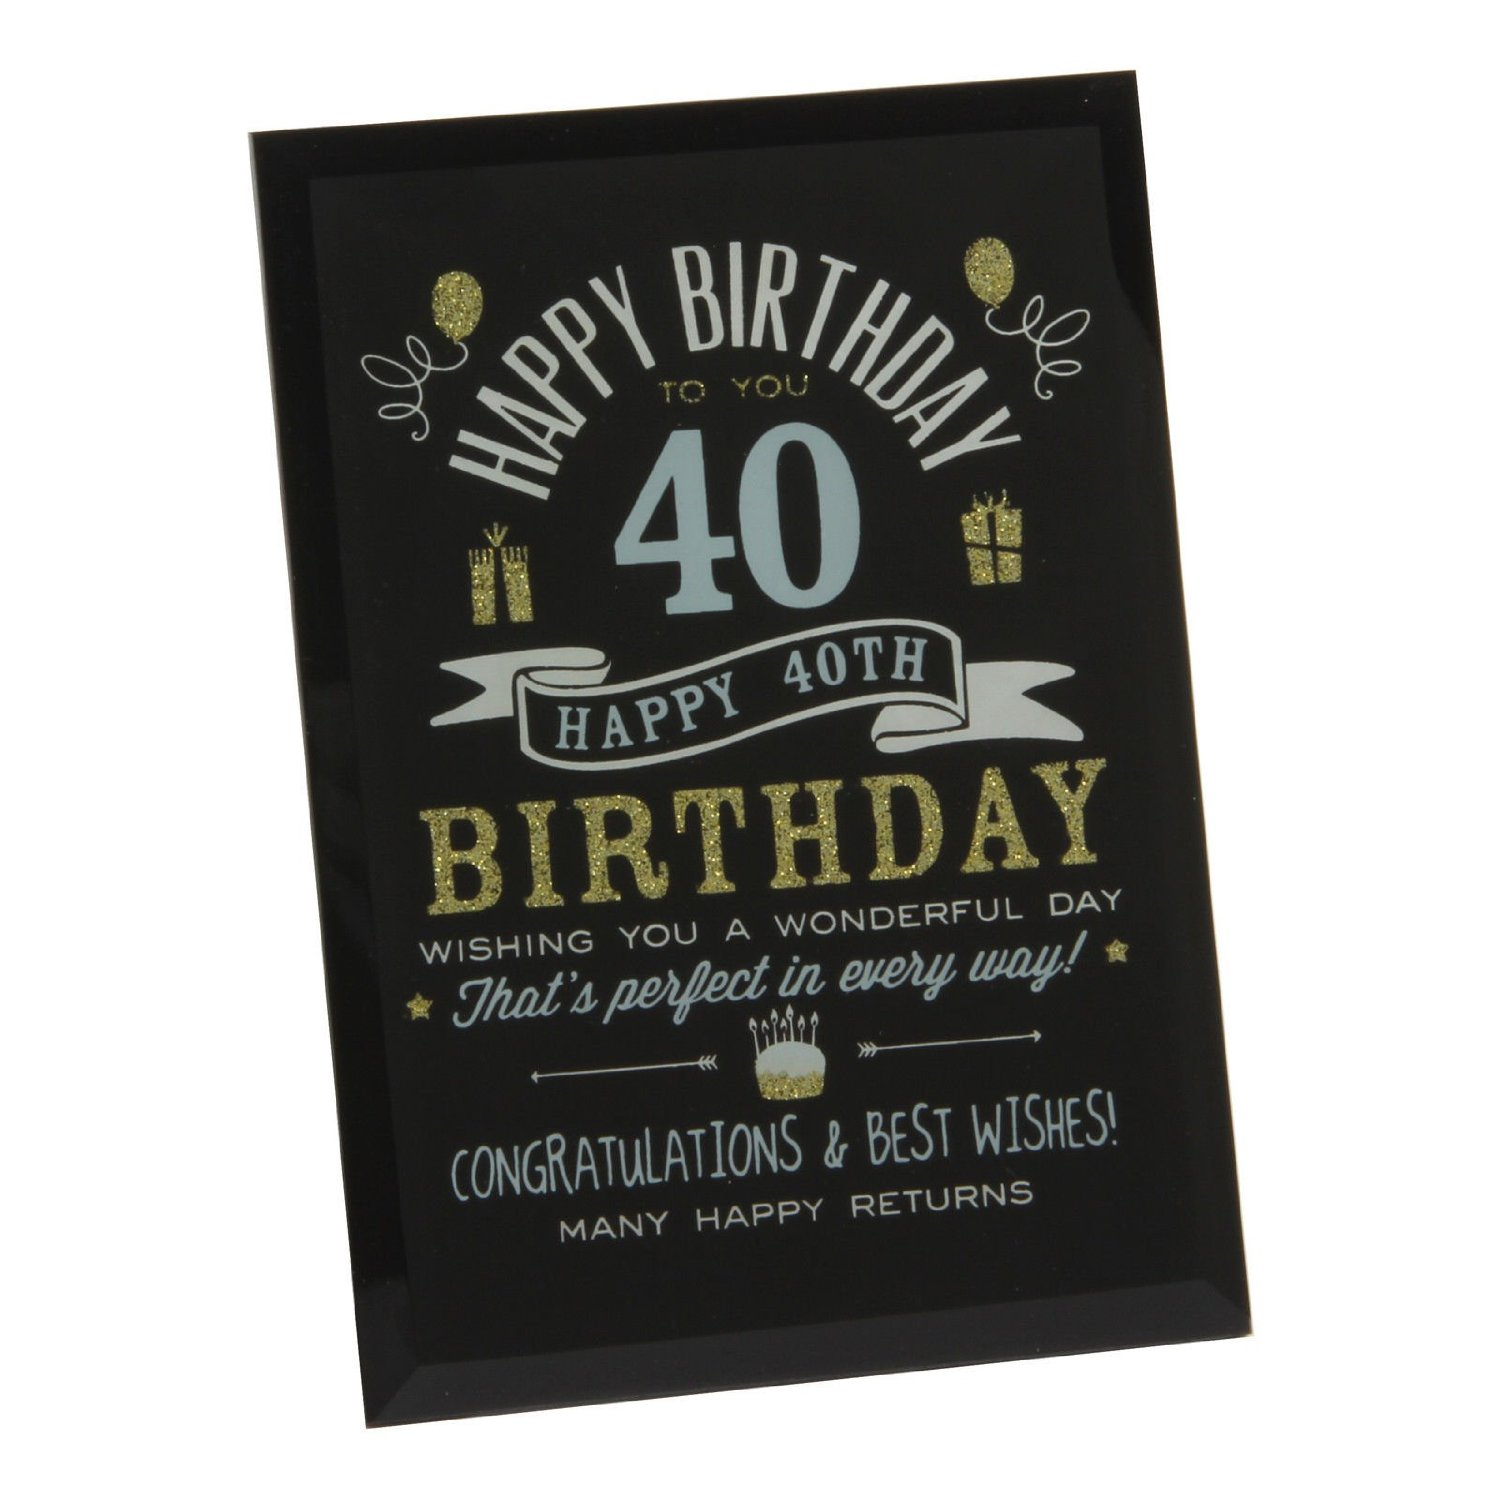 Get Quotations 40Th Birthday Gift Ideas Glass Plaque For Him Her Friends Grandparents